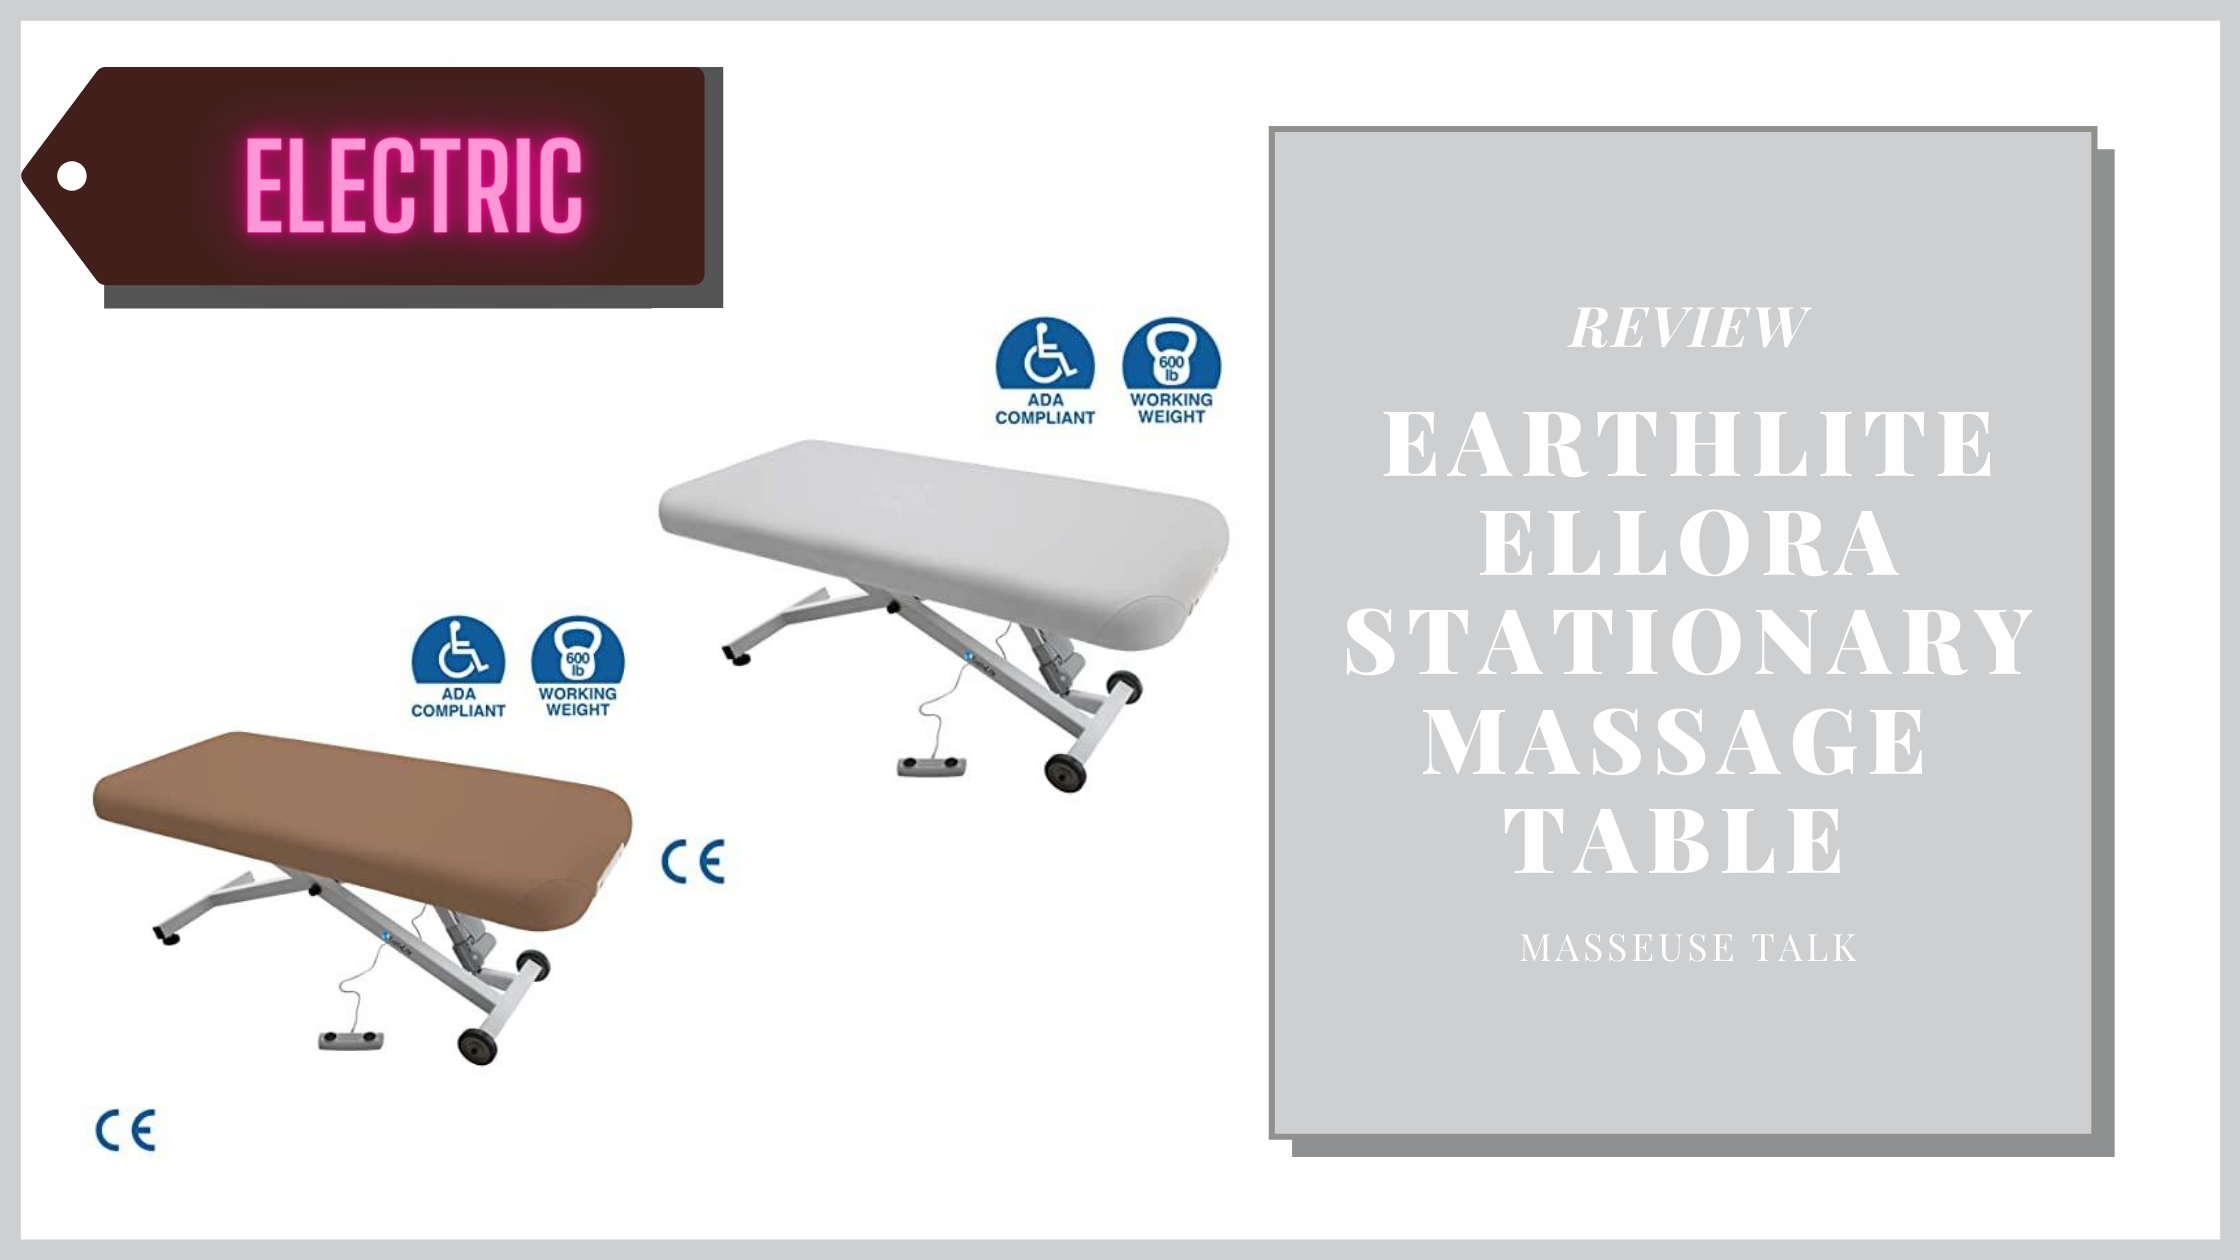 Earthlite Ellora Electric Massage Table